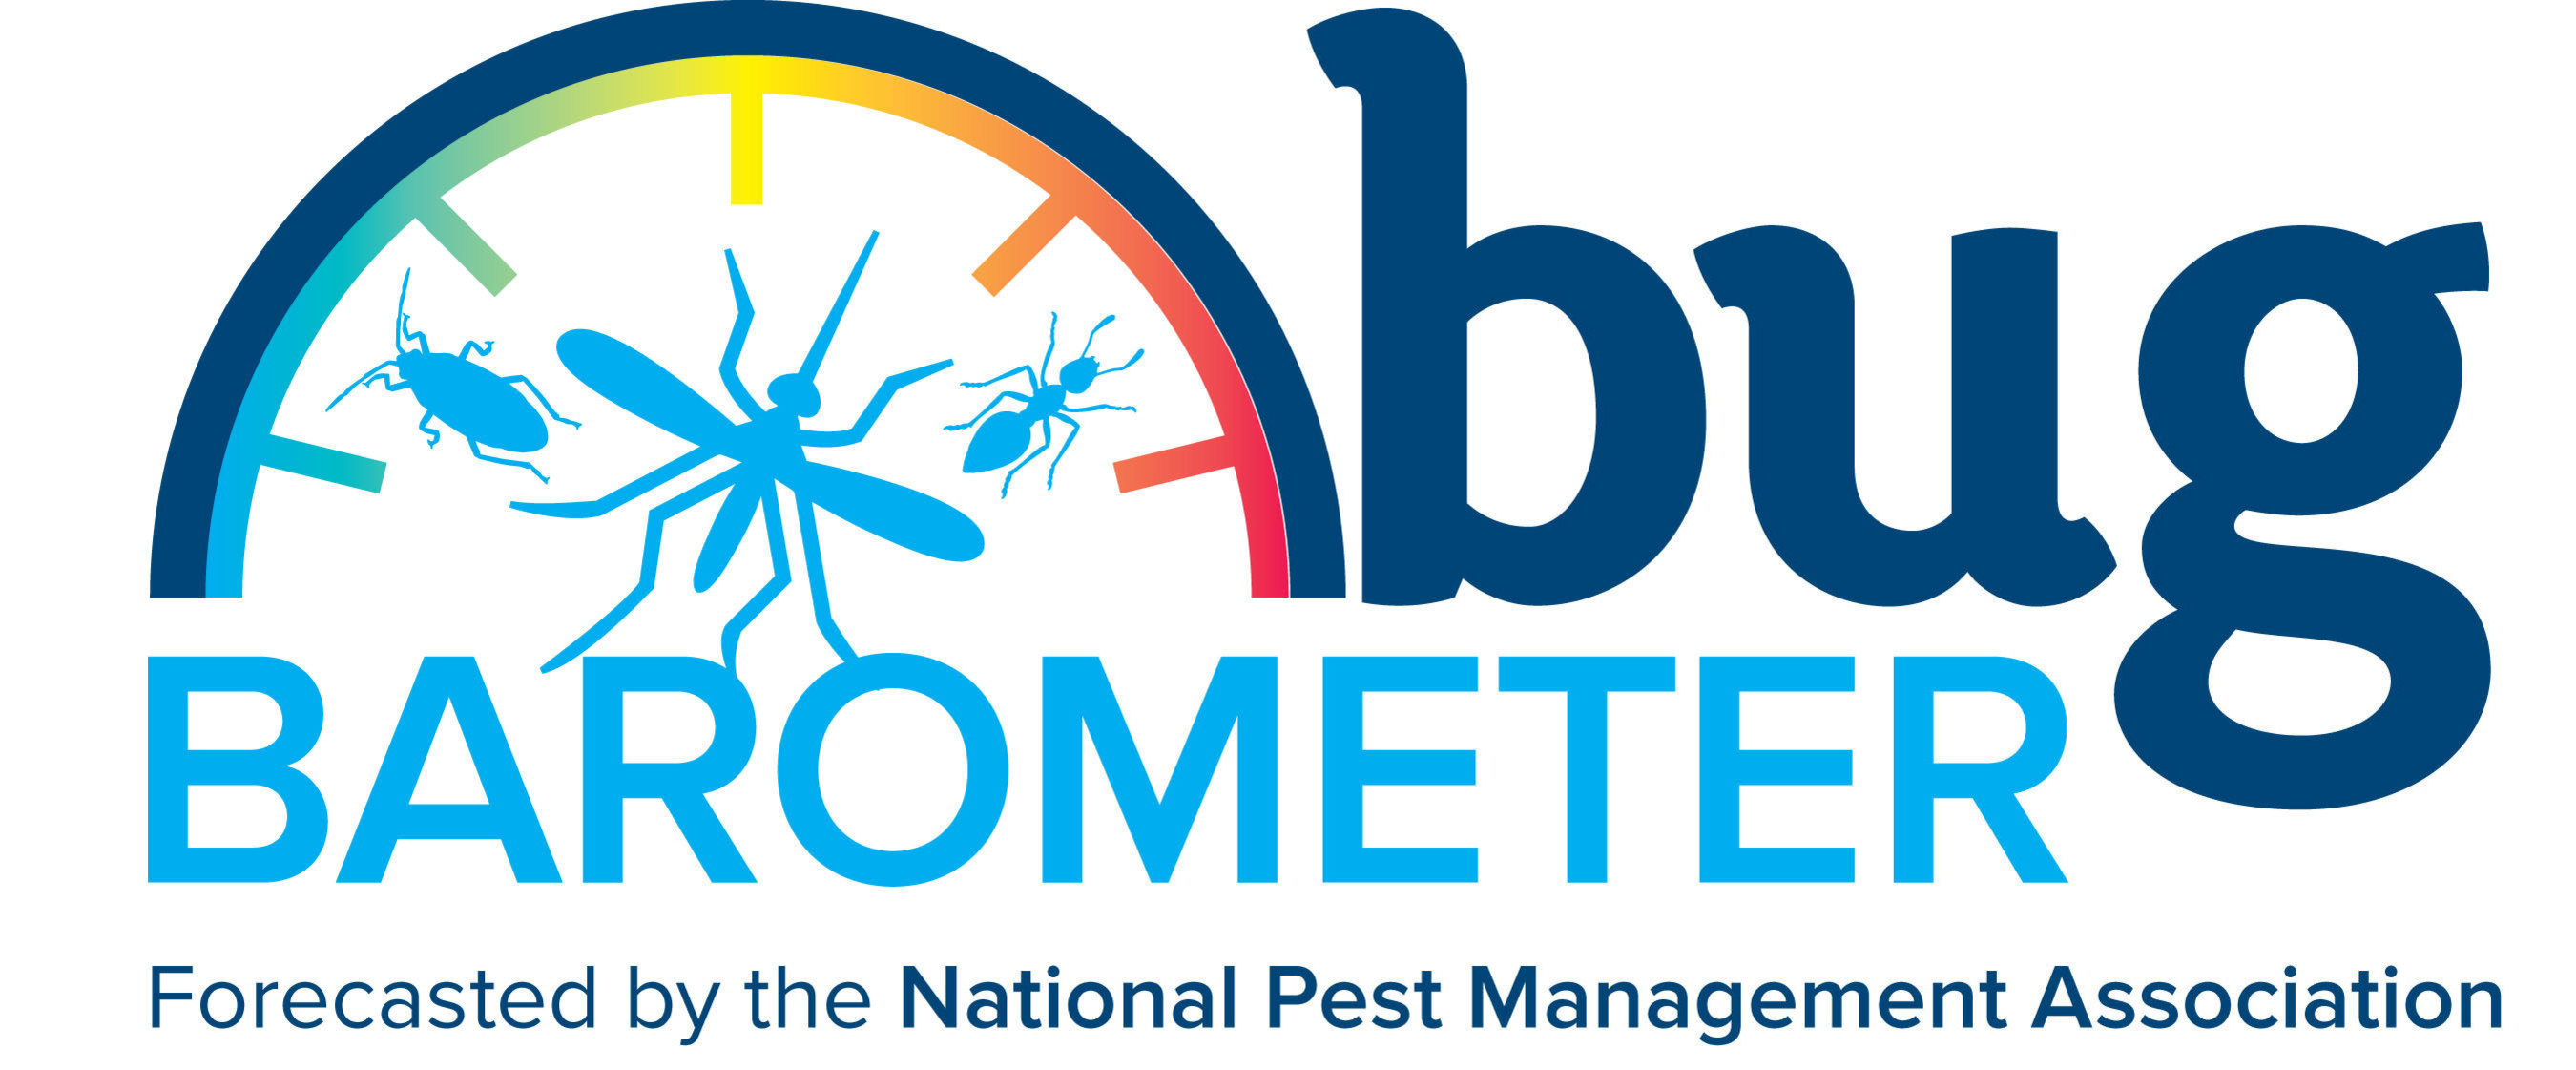 Bug Barometer: Forecasted by the National Pest Management Association